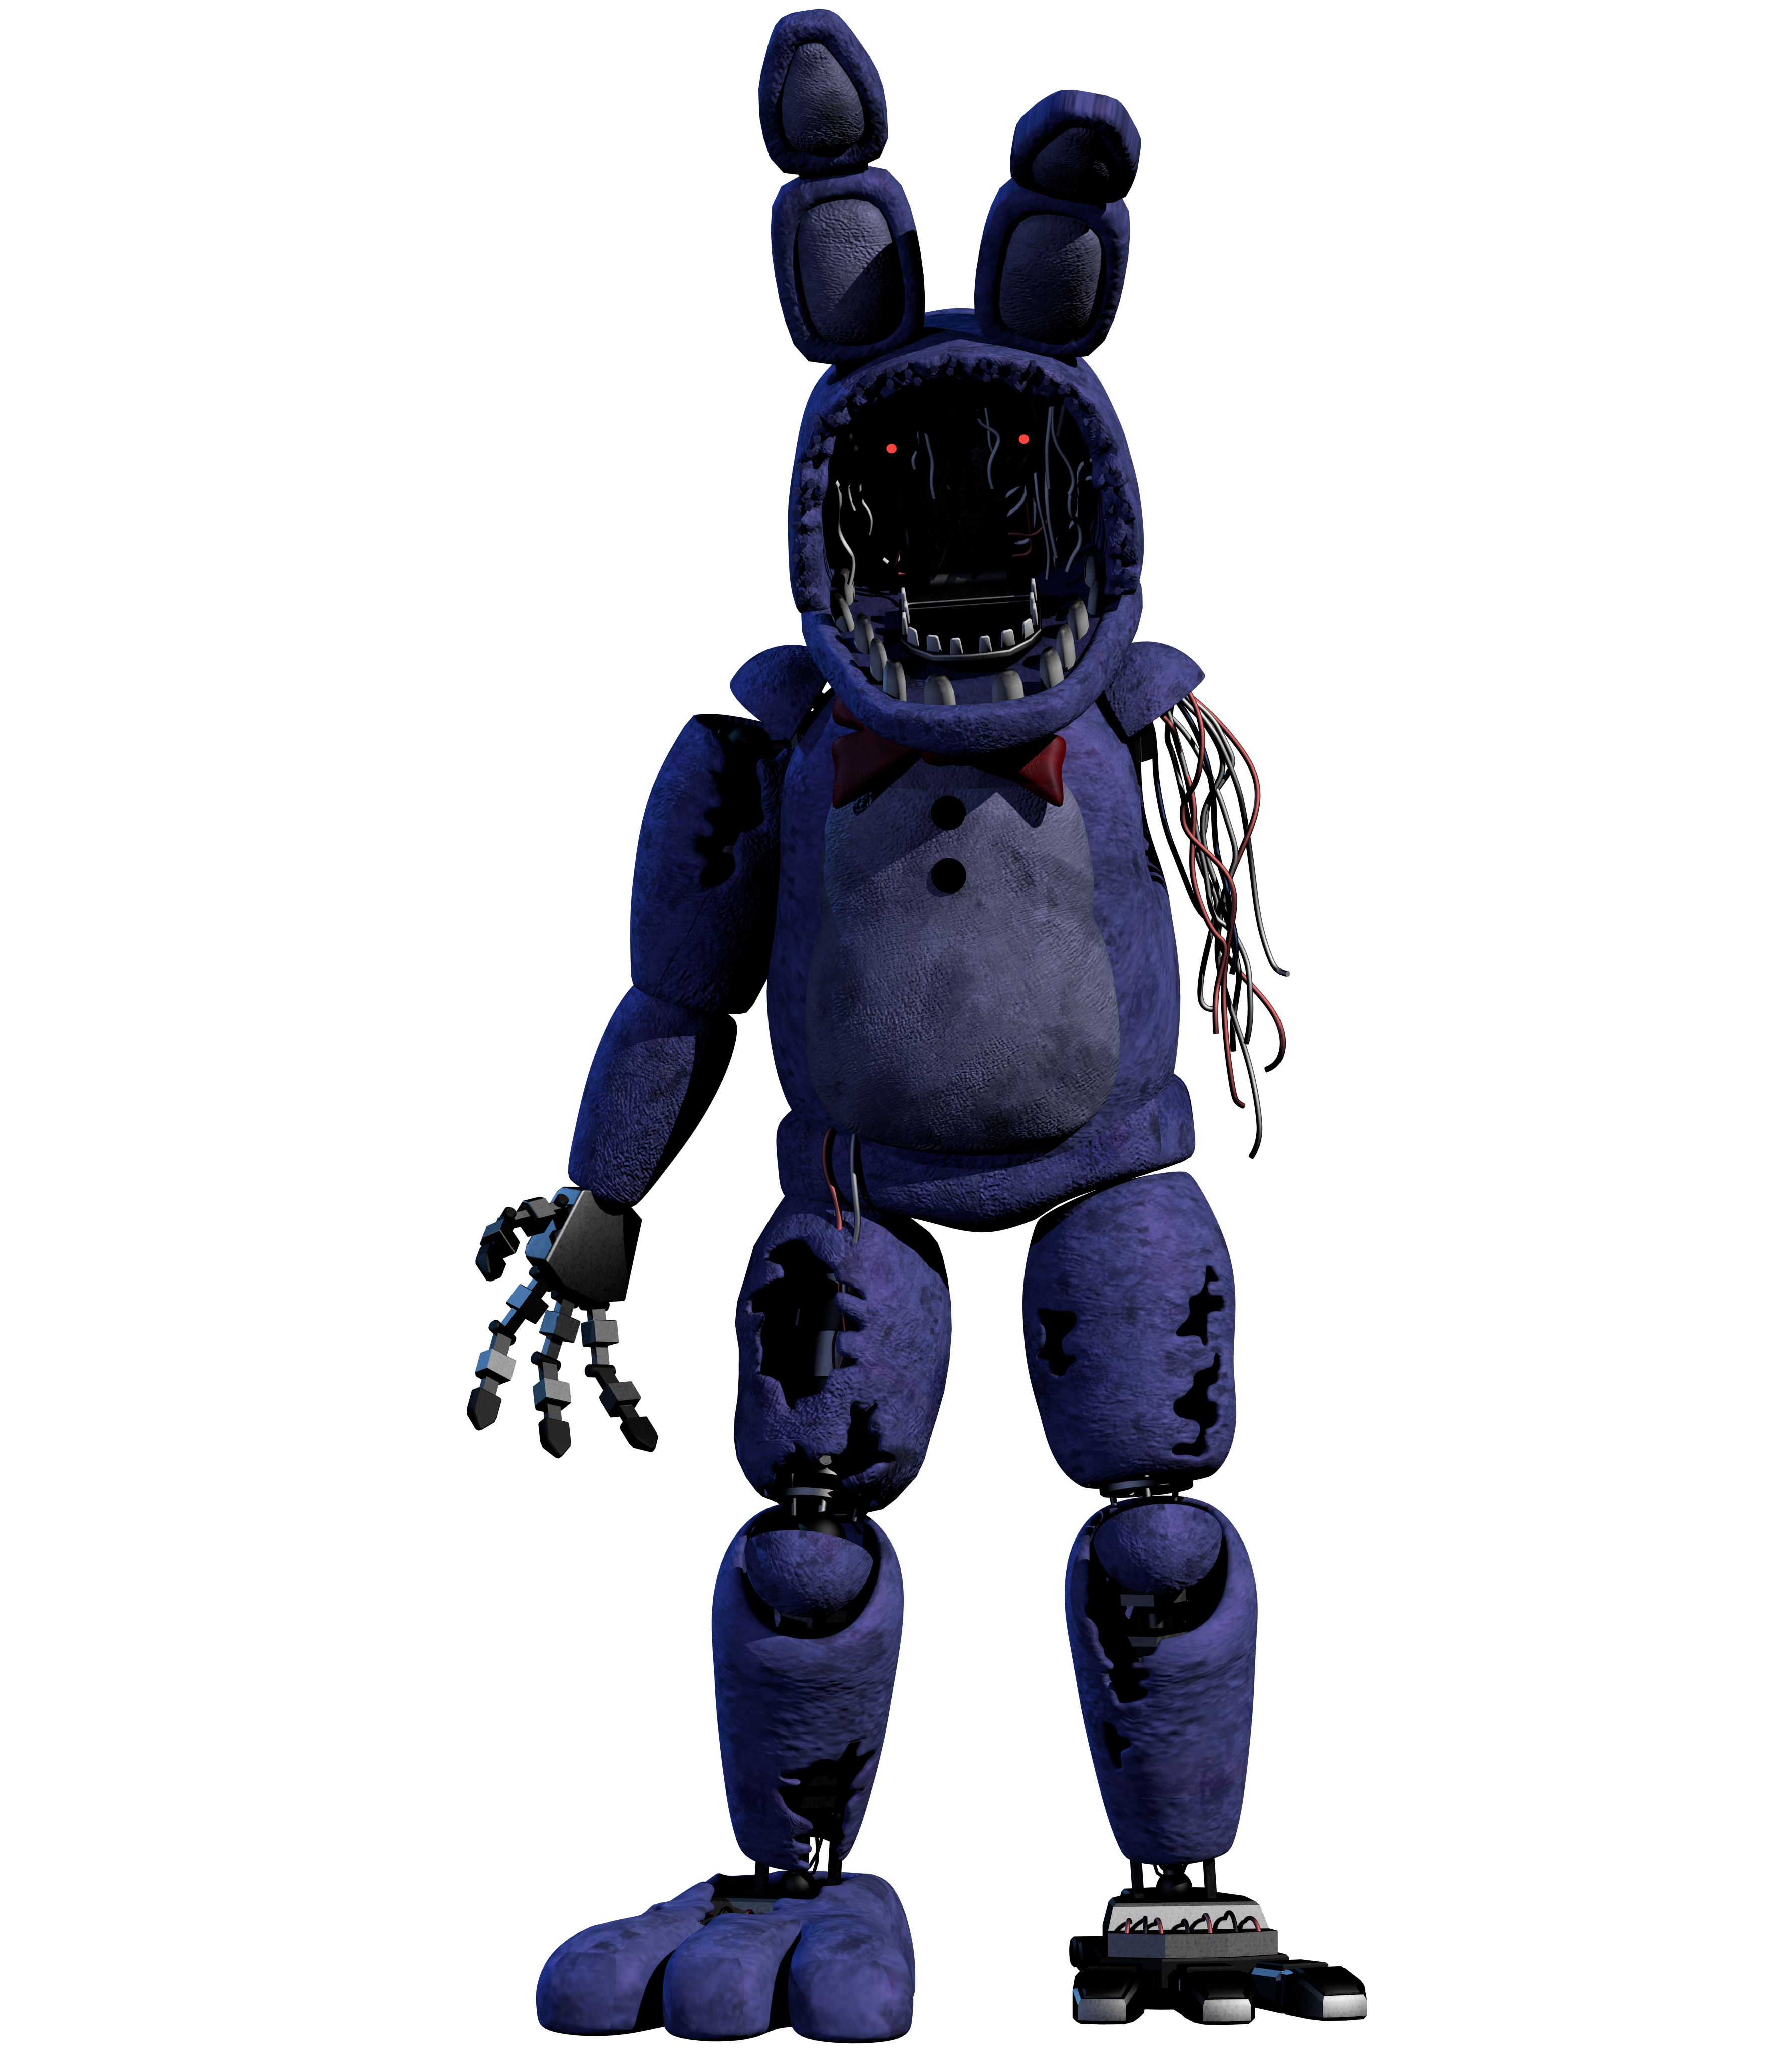 Improved Withered Bonnie FULL RENDER 4k by CoolioArt on ...